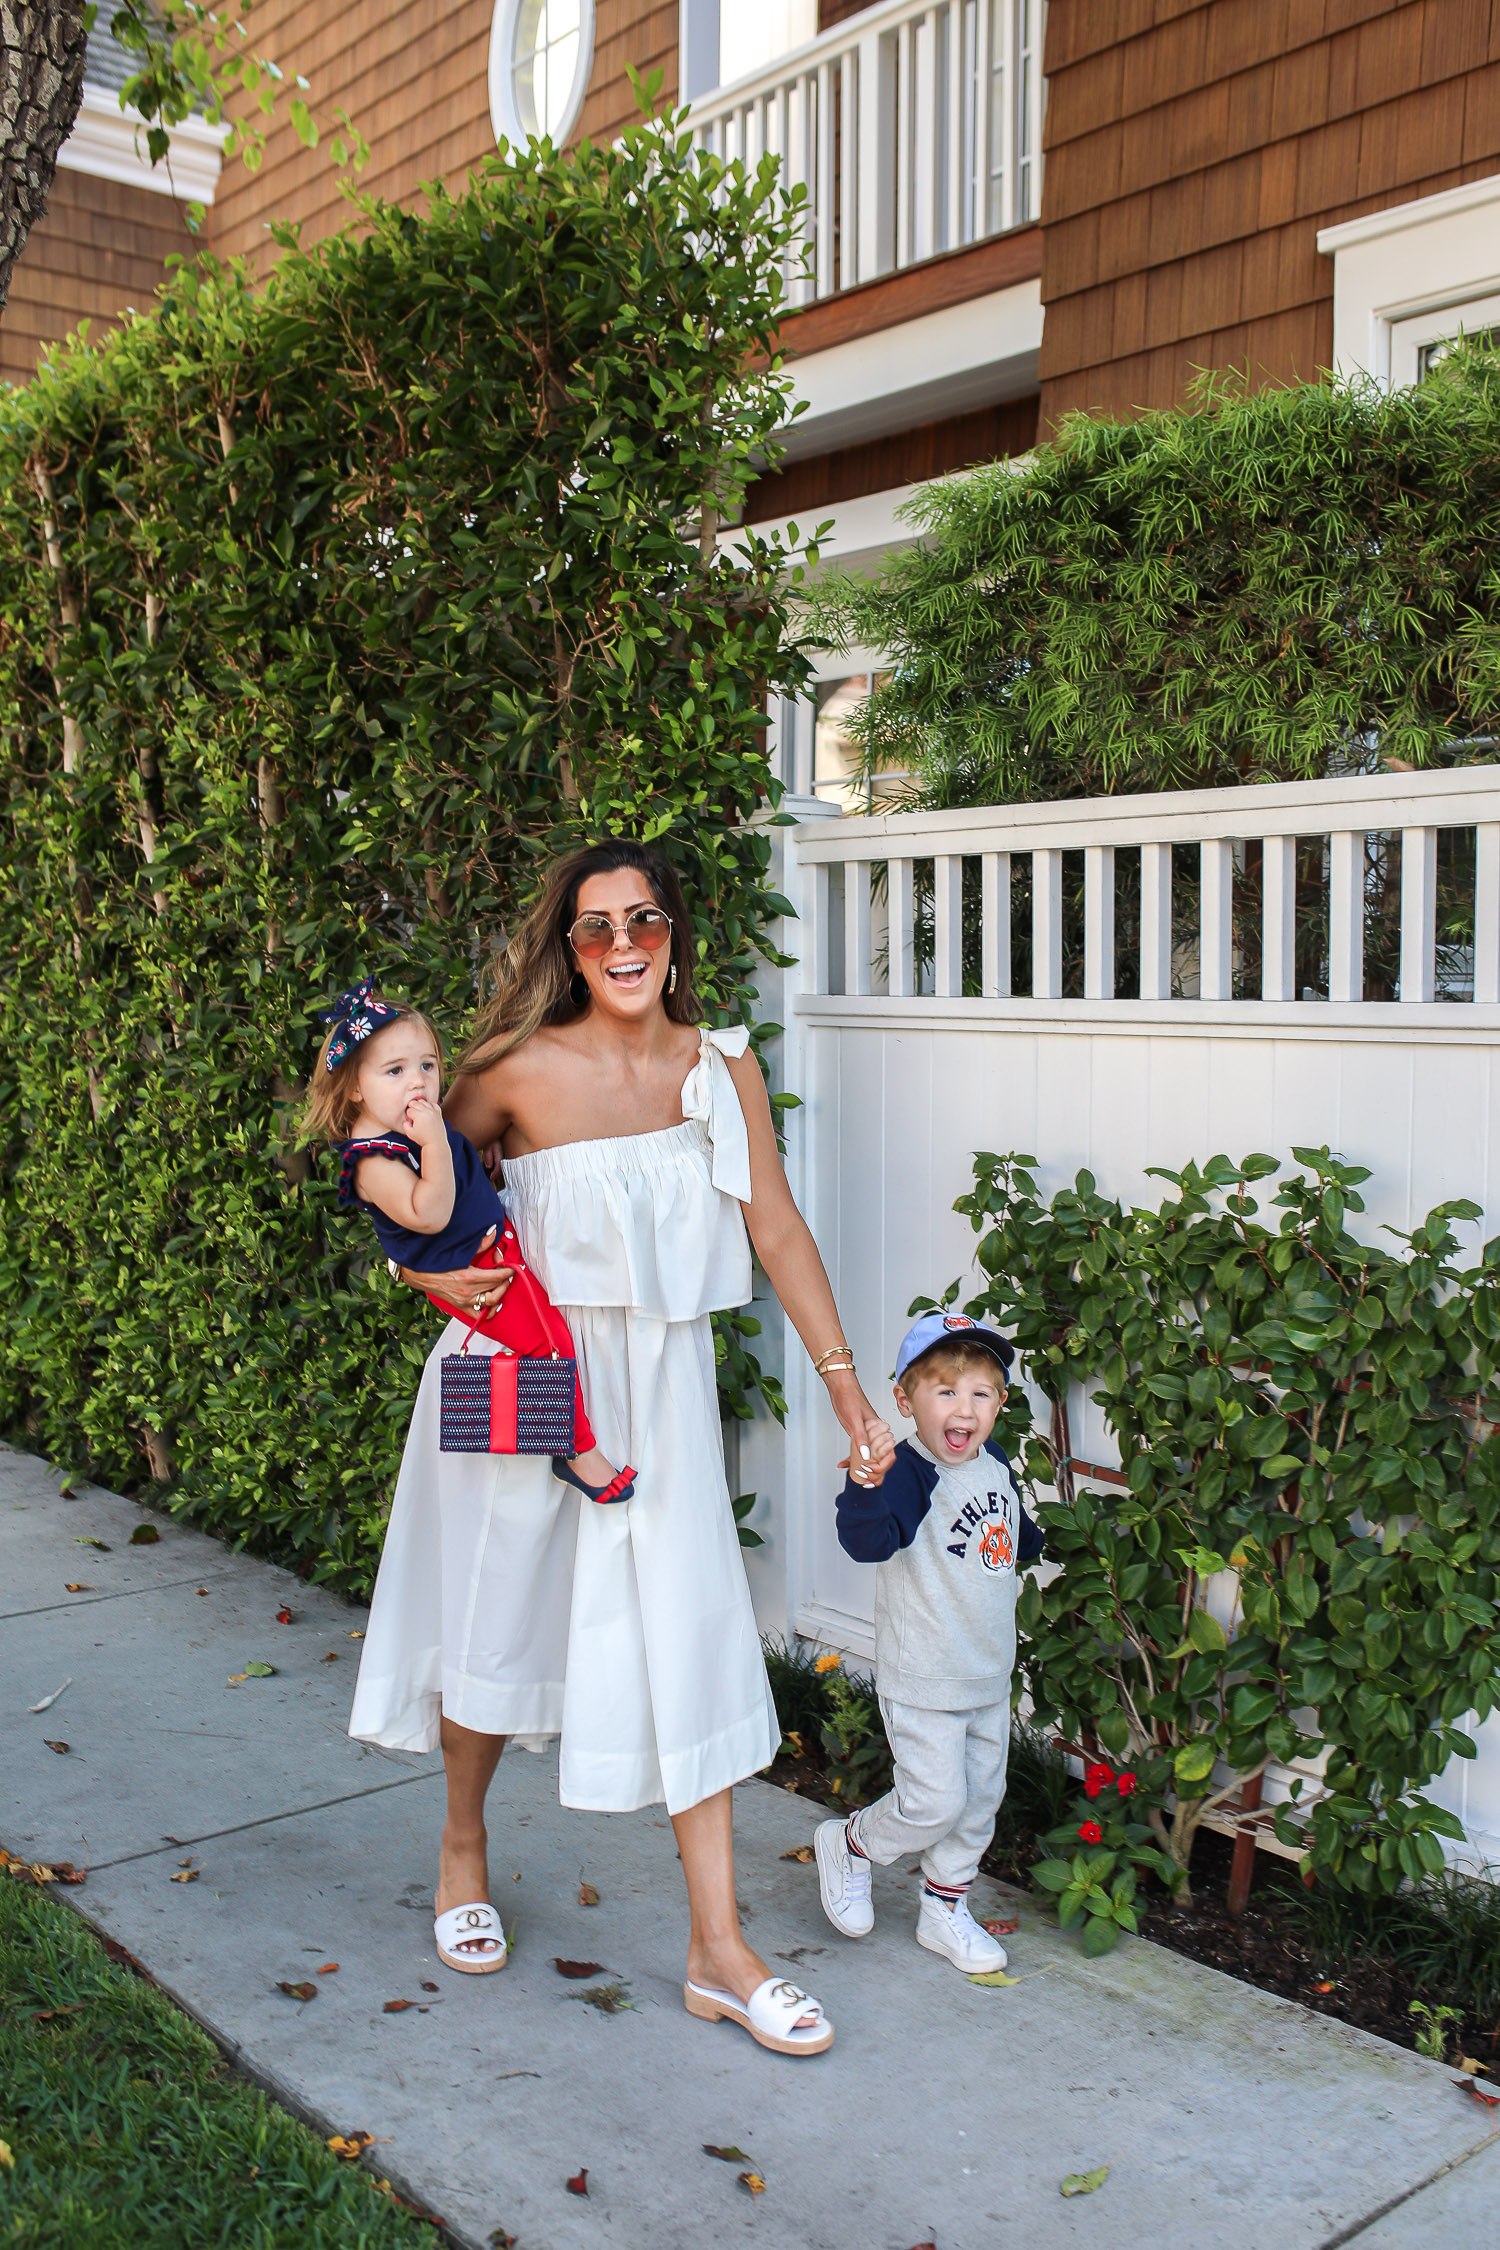 Janie and Jack by popular US fashion Blog, The Sweetest Thing: image of a mom and her two kids walking outside on a sidewalk in Newport Beach, CA and wearing a white one shoulder dress and white Channel slide sandals, Janie and Jack TIGER PATCH CAP, Janie and Jack RAGLAN TIGER SWEATSHIRT, Janie and Jack STRIPE TRIM JOGGER, Janie and Jack PLEATED SLEEVE TOP, Janie and Jack BUTTON PONTE PANT, Janie and Jack BOW ANKLE STRAP FLAT, FLORAL BOW BARRETTE, and Janie and Jack BOUCLÉ PURSE.